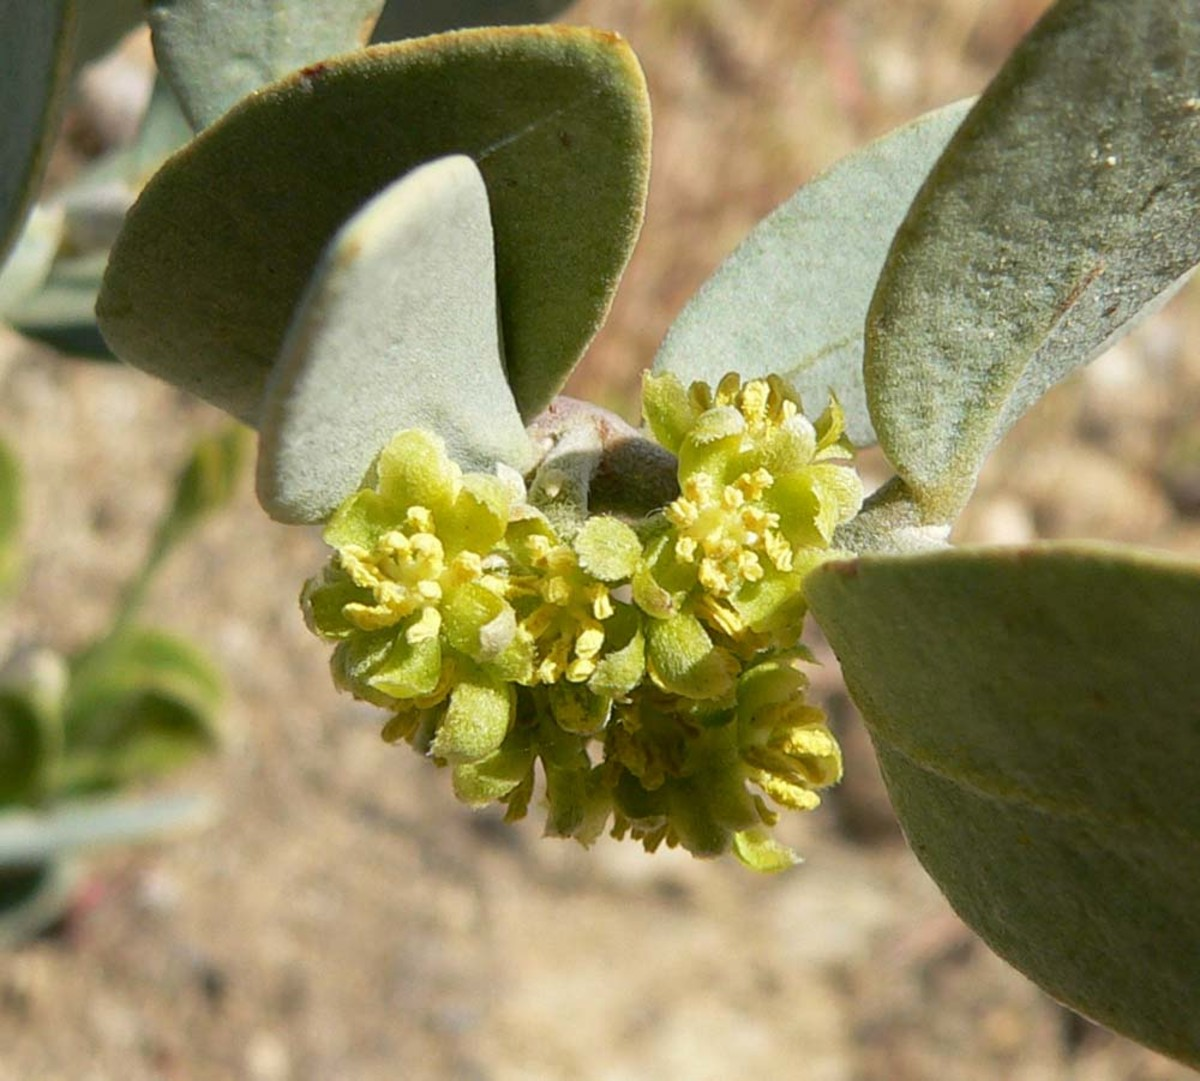 Each jojoba plant is either male or female.